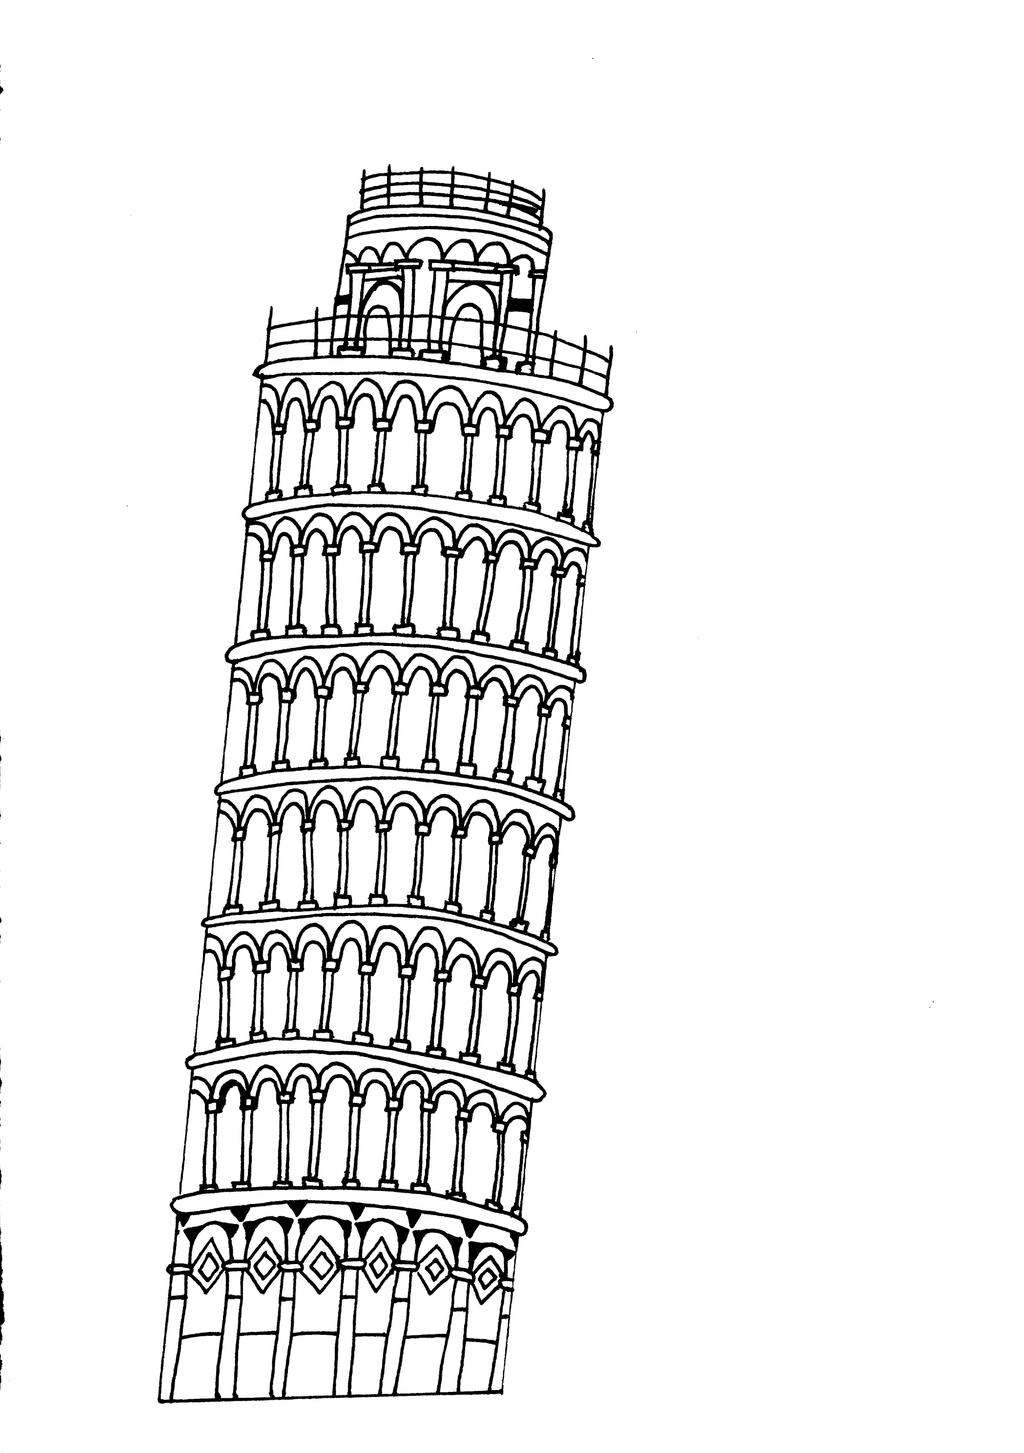 pisa tower drawing the leaning tower of pisa by untilblack on deviantart pisa tower drawing